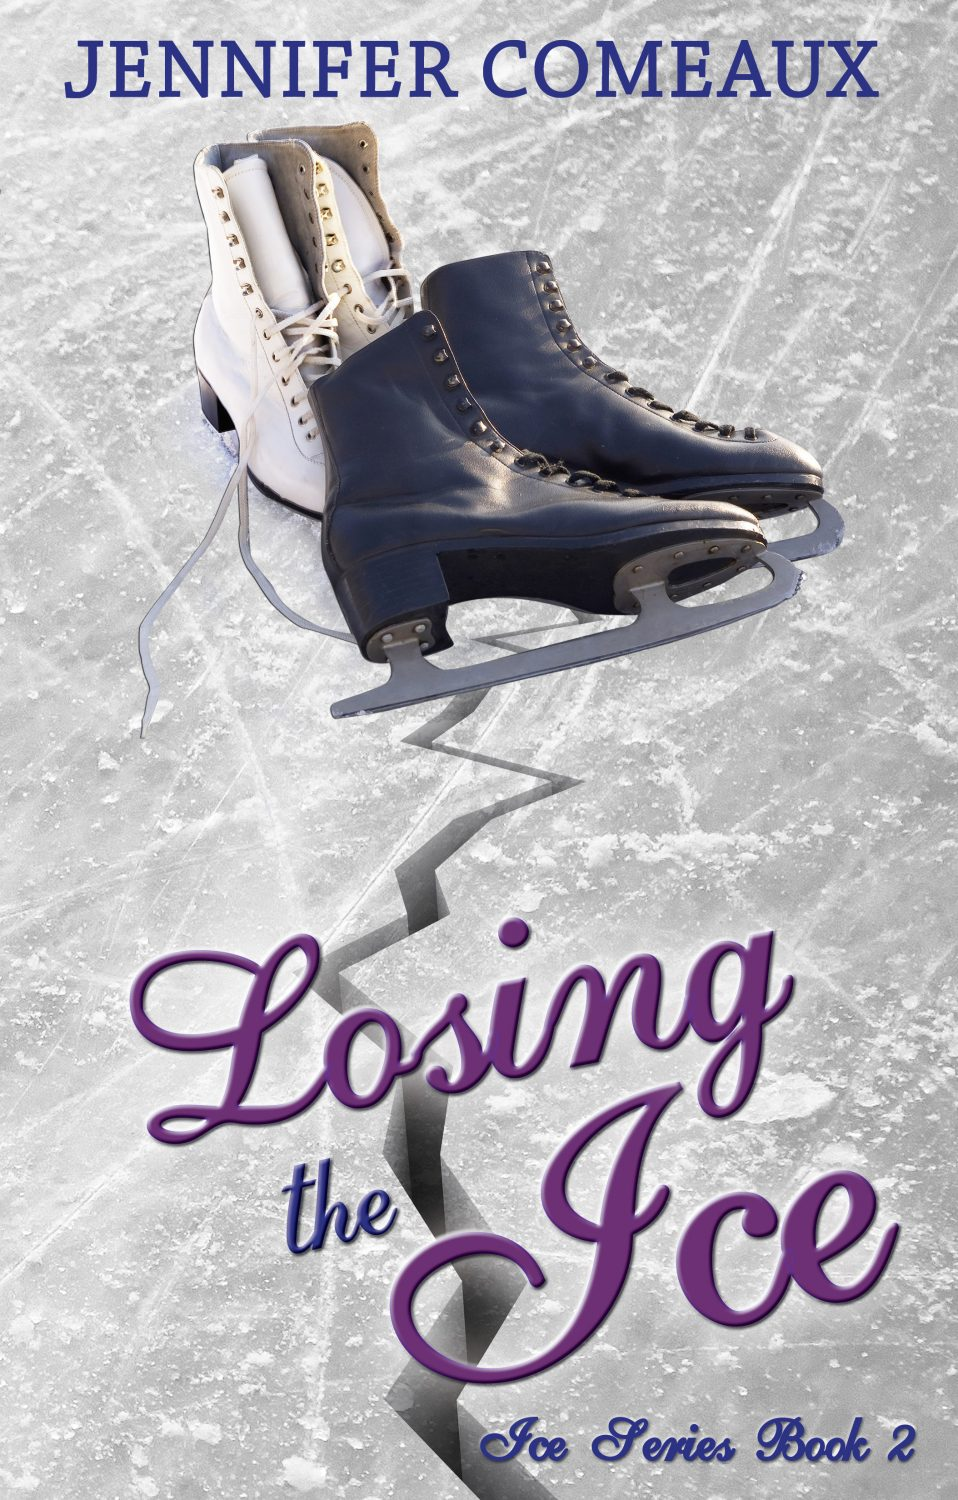 Blog Tour, Review & Giveaway: Losing the Ice (Ice #2) by Jennifer Comeaux